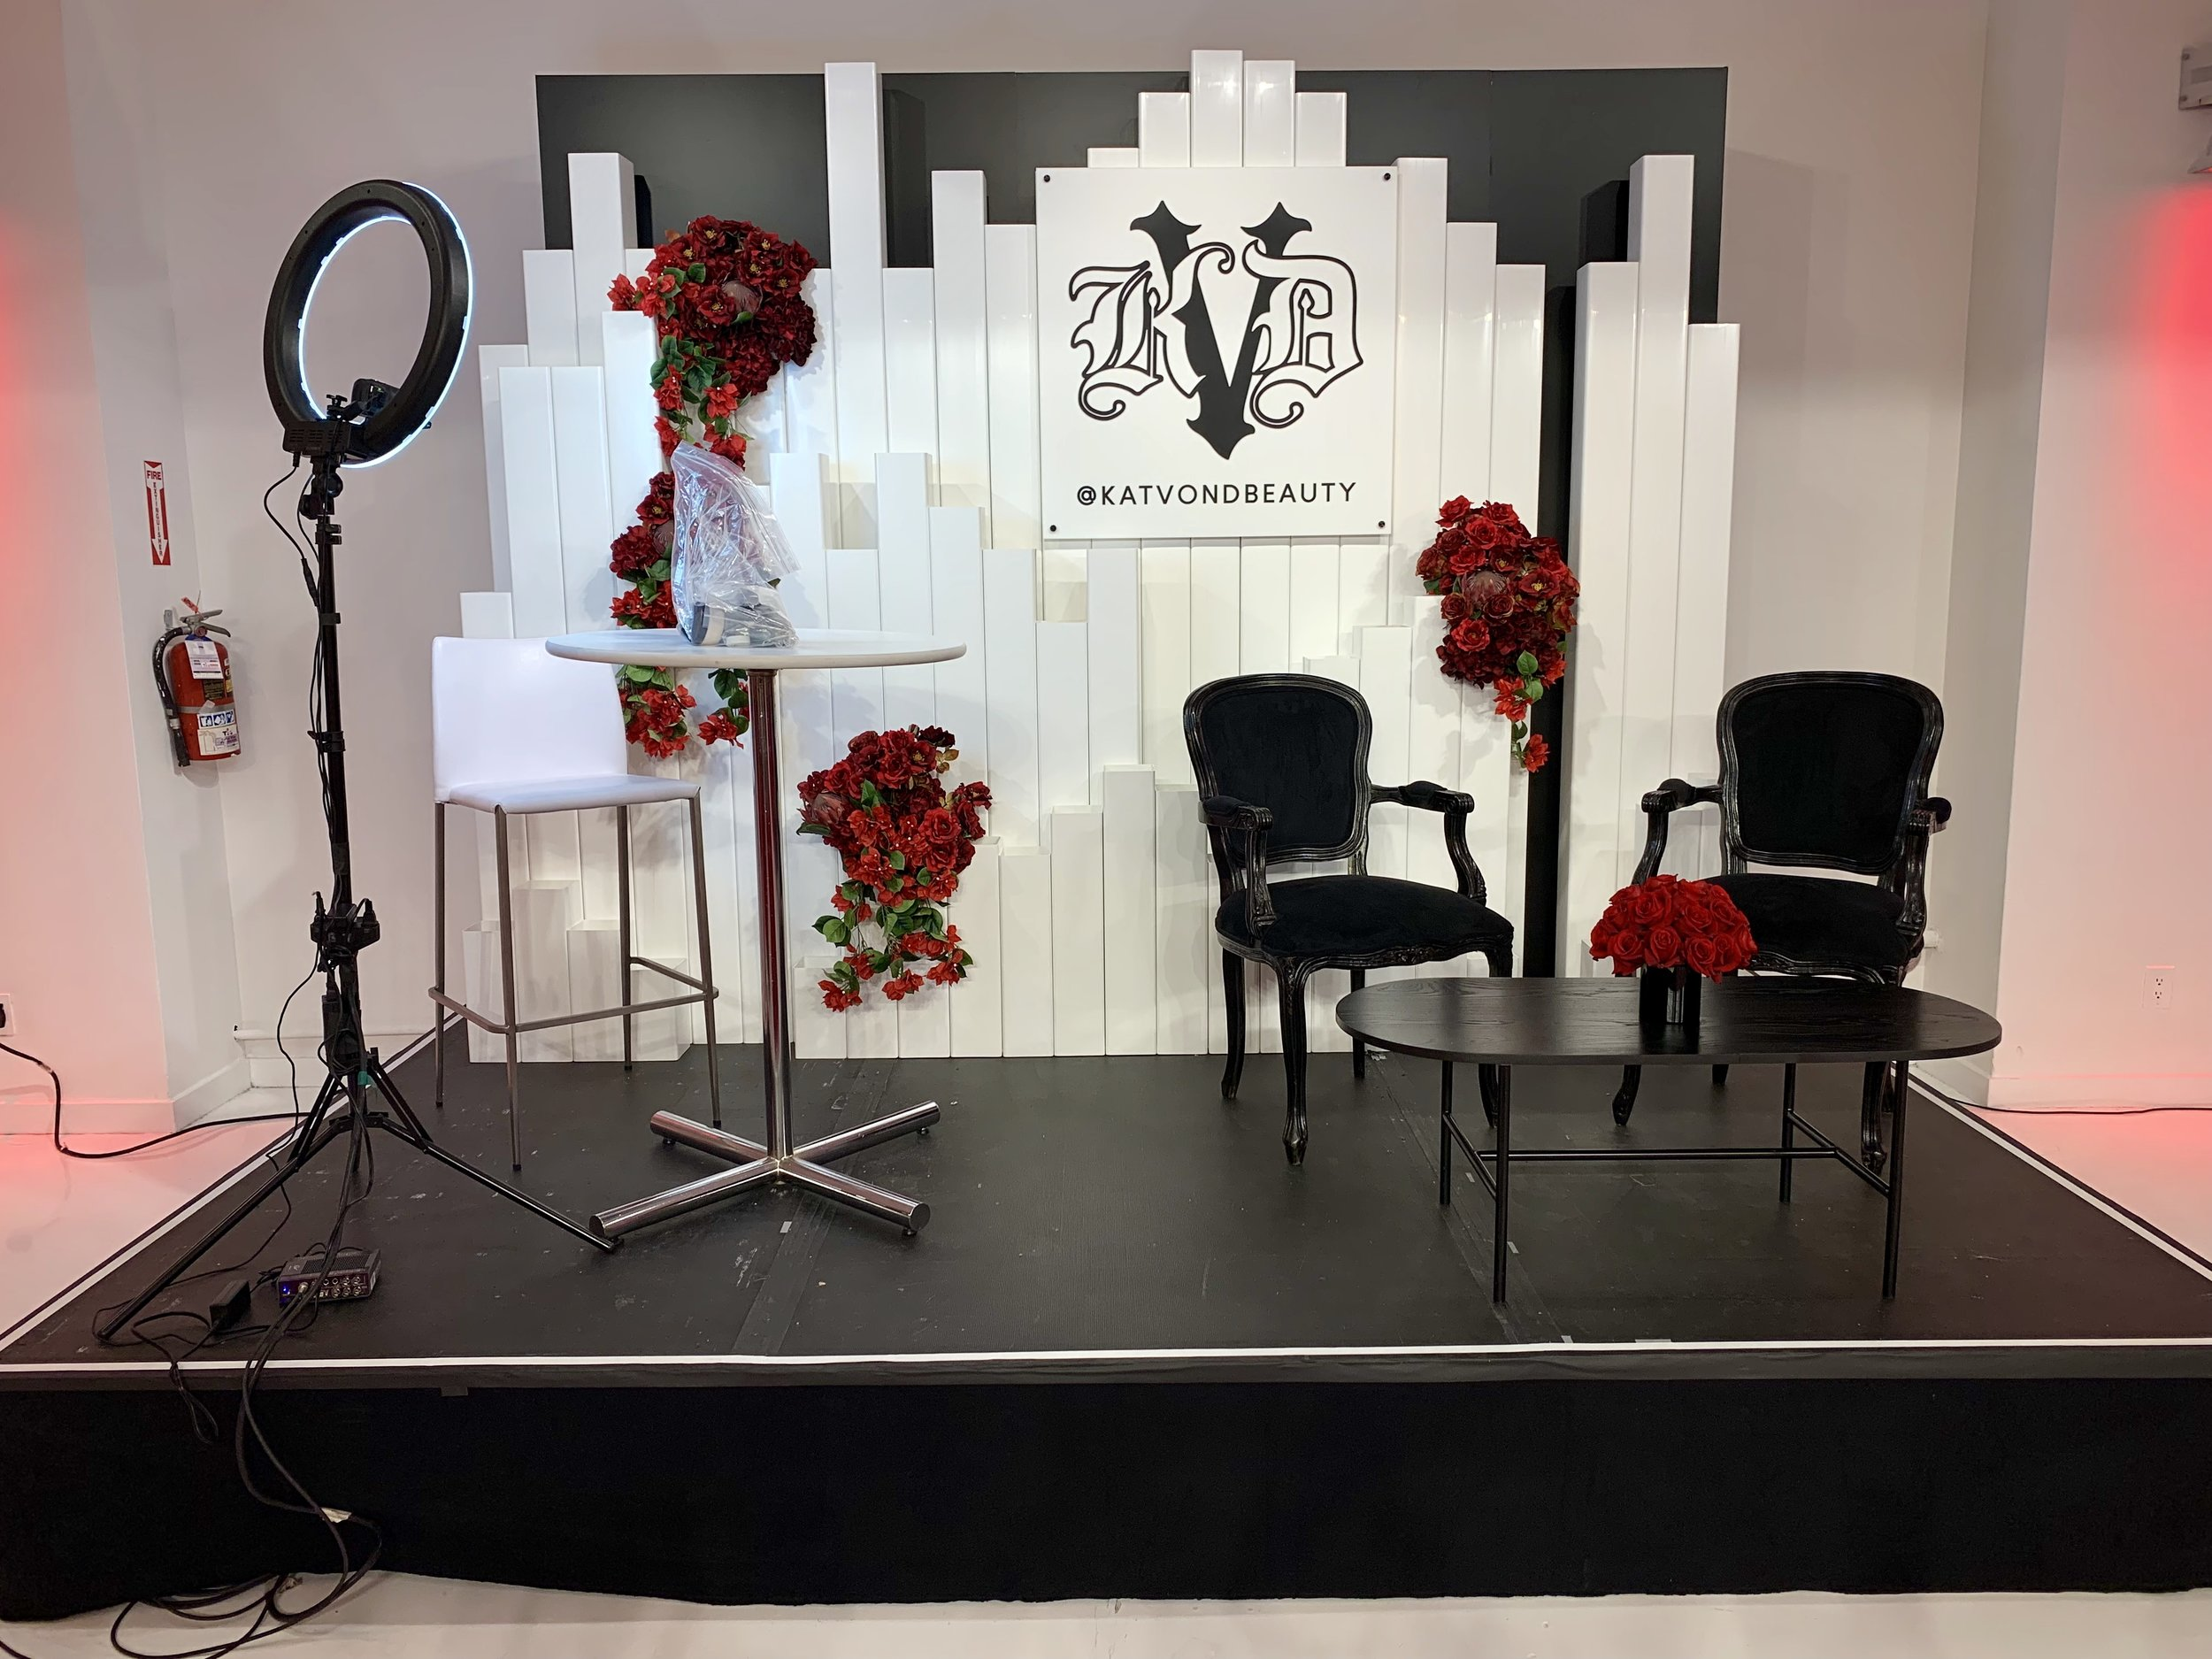 KAT VON D - BEAUTY - STAGE DESIGN - KENDO BRANDS